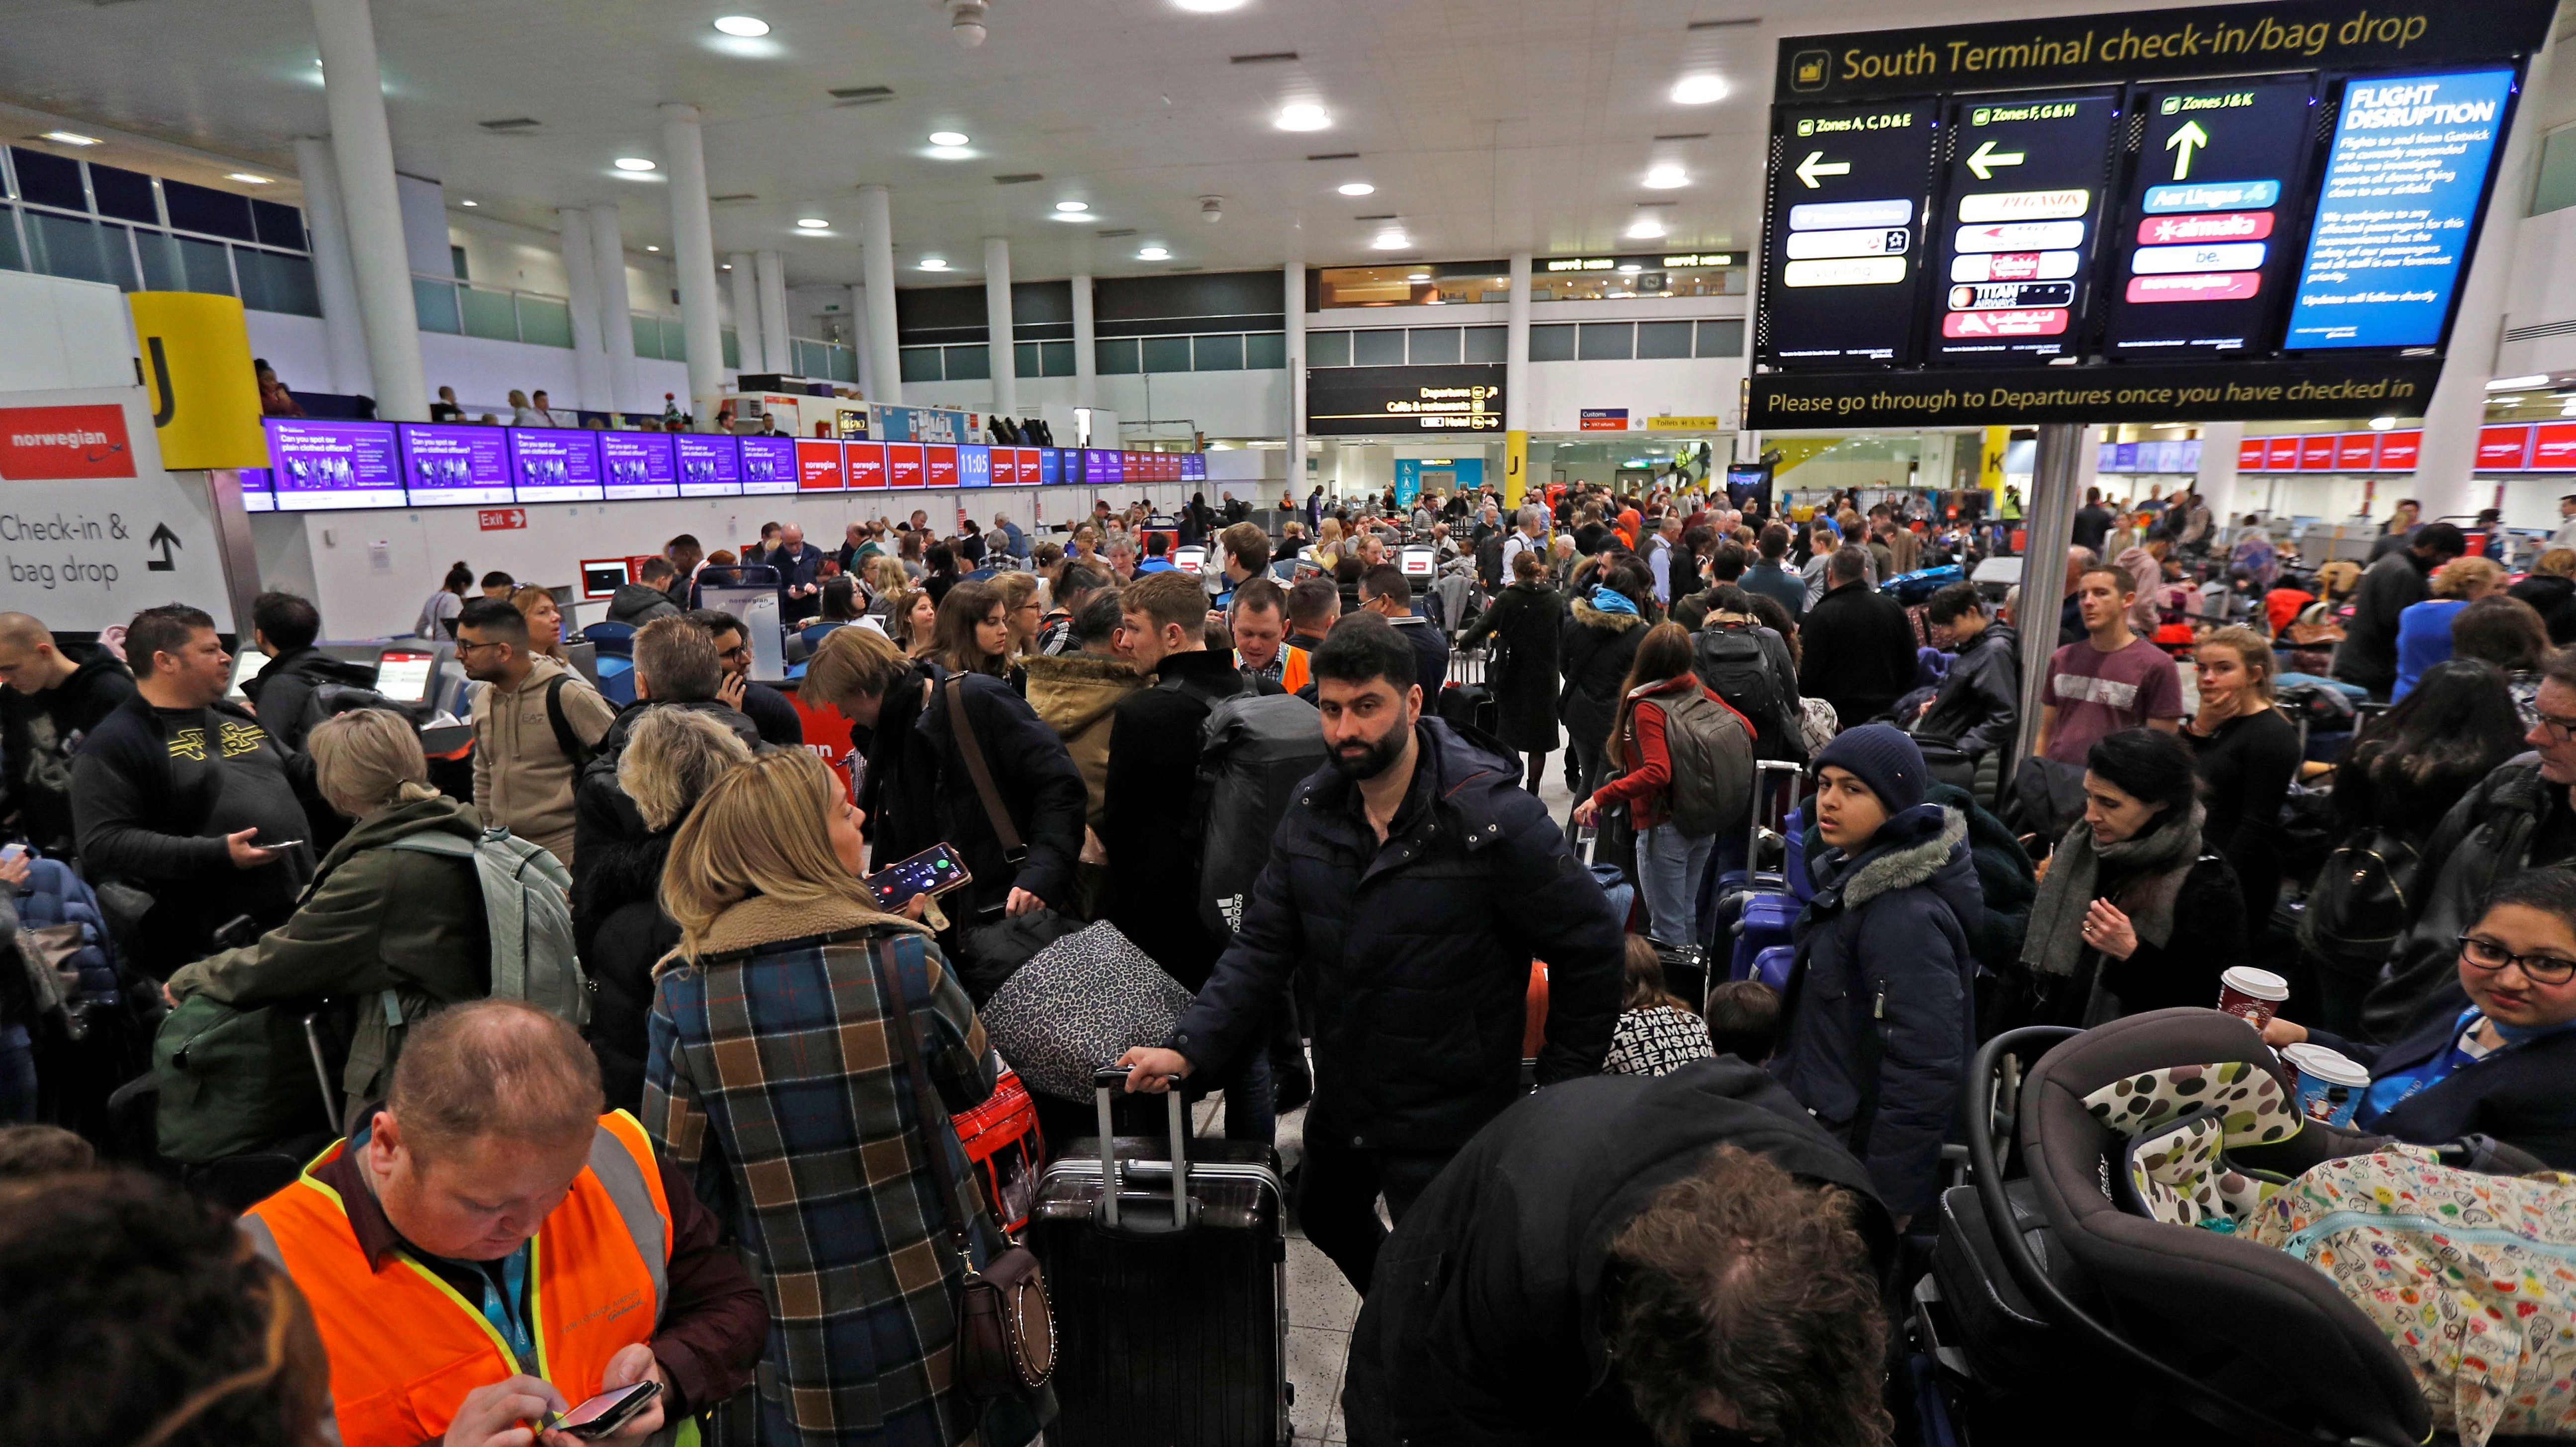 Passengers wait around in the South Terminal building at Gatwick Airport after drones flying illegally over the airfield forced the closure of the airport, in Gatwick, Britain, December 20, 2018.